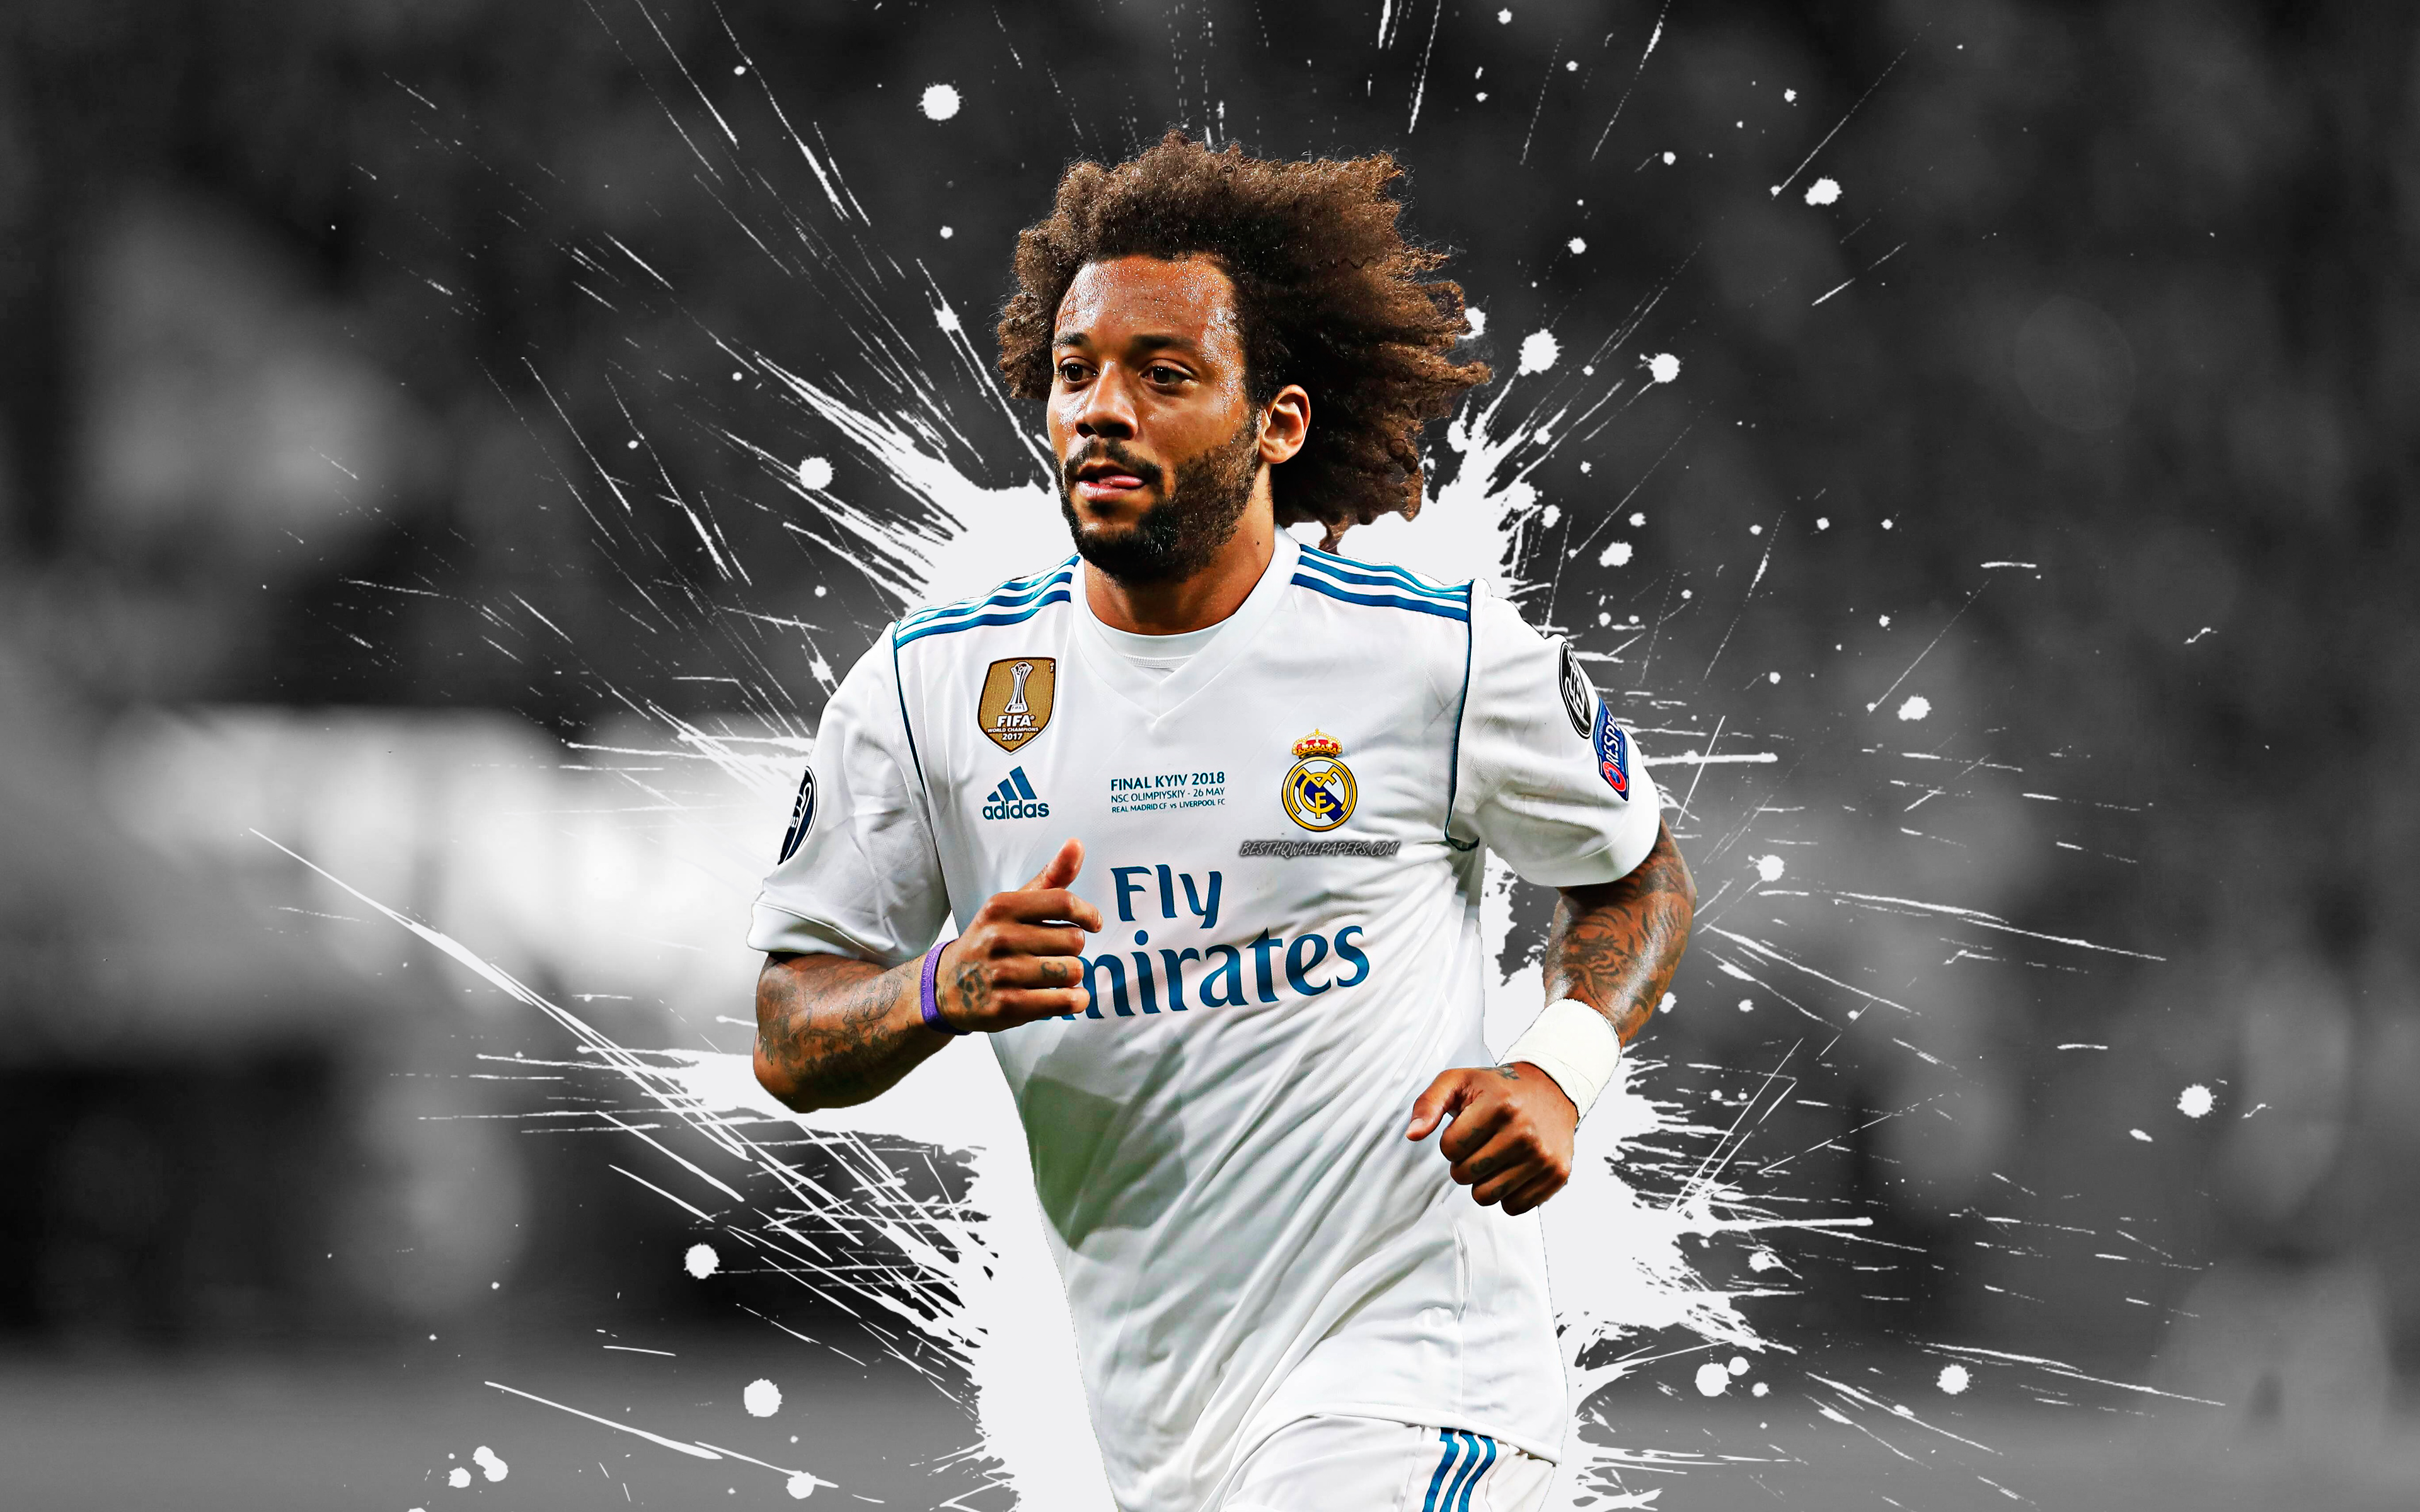 Download wallpapers Marcelo 4k Real Madrid art splashes of 3840x2400